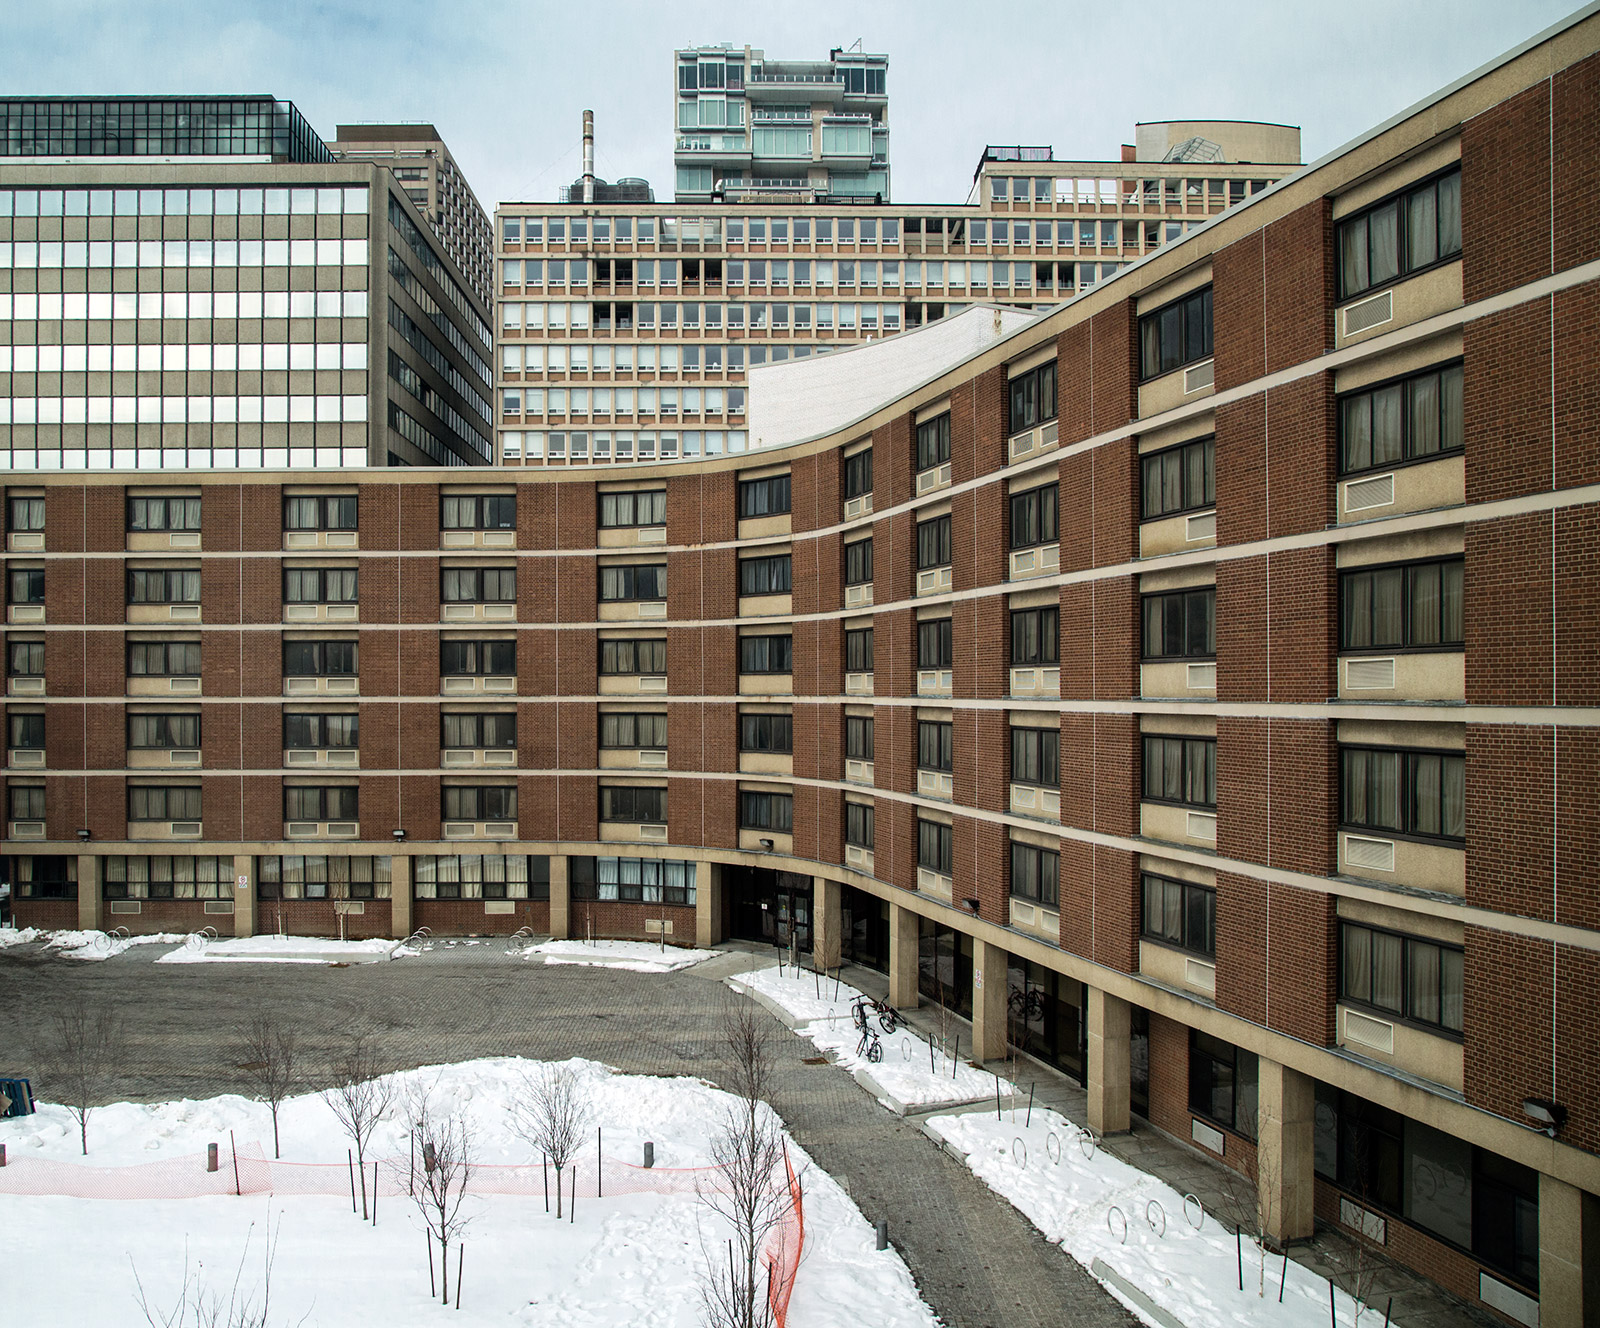 20141016. Margaret Addison Hall - U of T curved residence in Tor